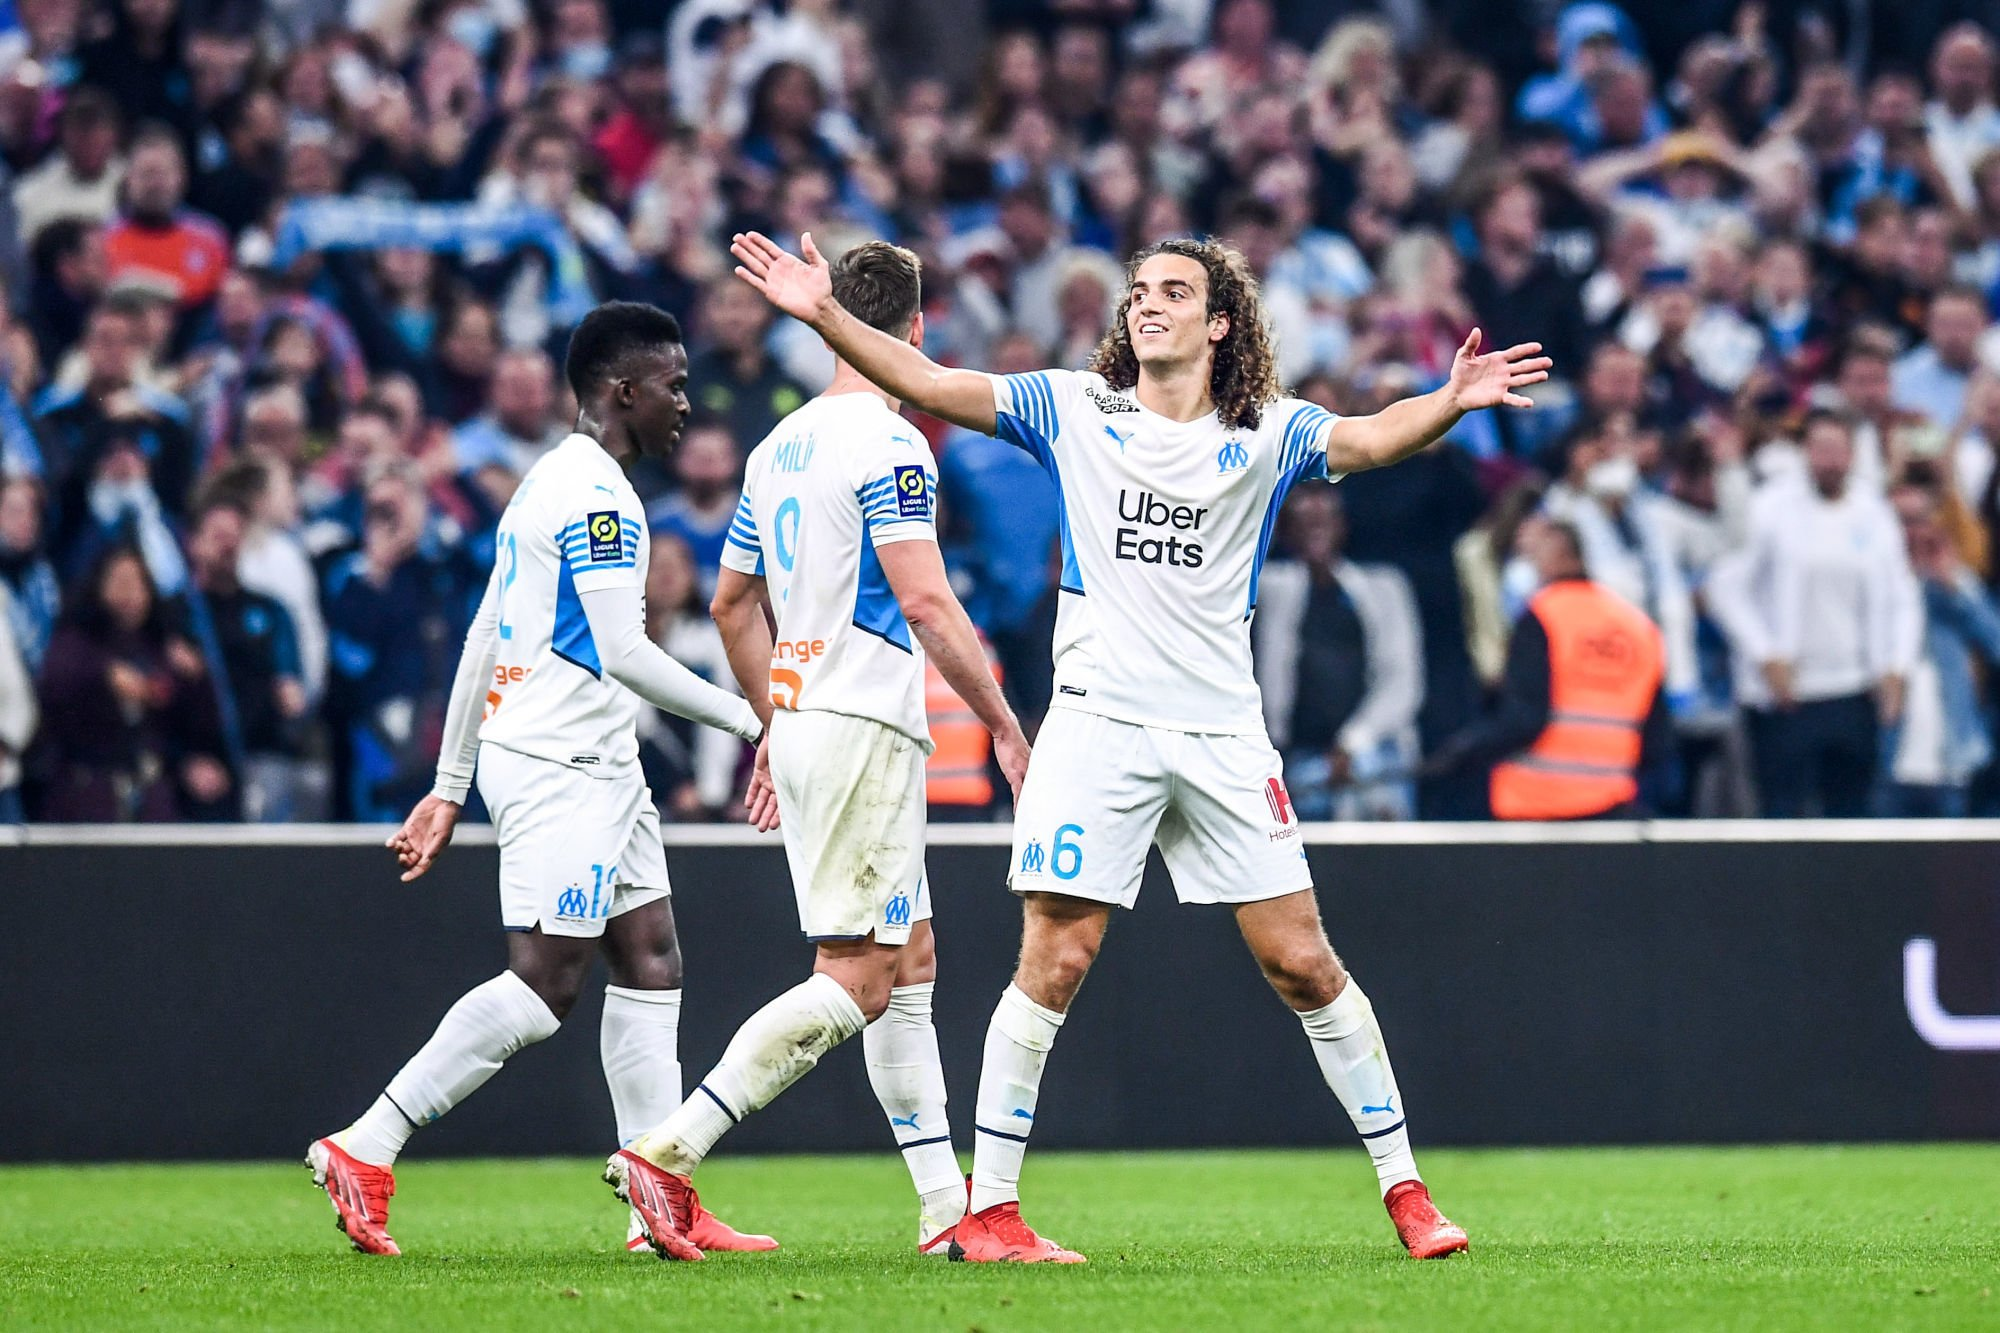 OM: Matteo Guendouzi wants to show his muscles